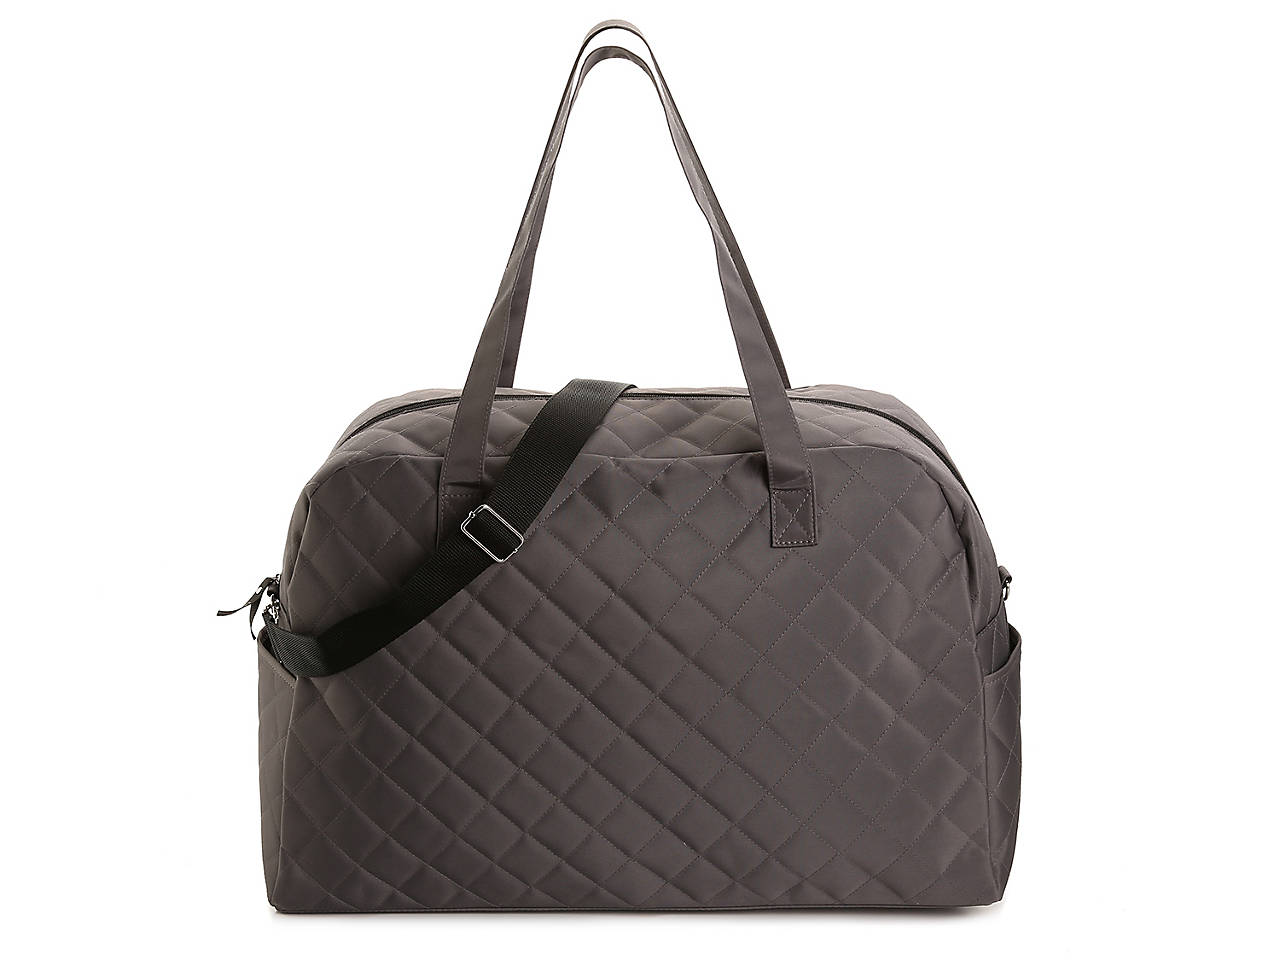 ad90f6930b4e DSW Exclusive Free Quilted Weekender Women s Handbags   Accessories ...